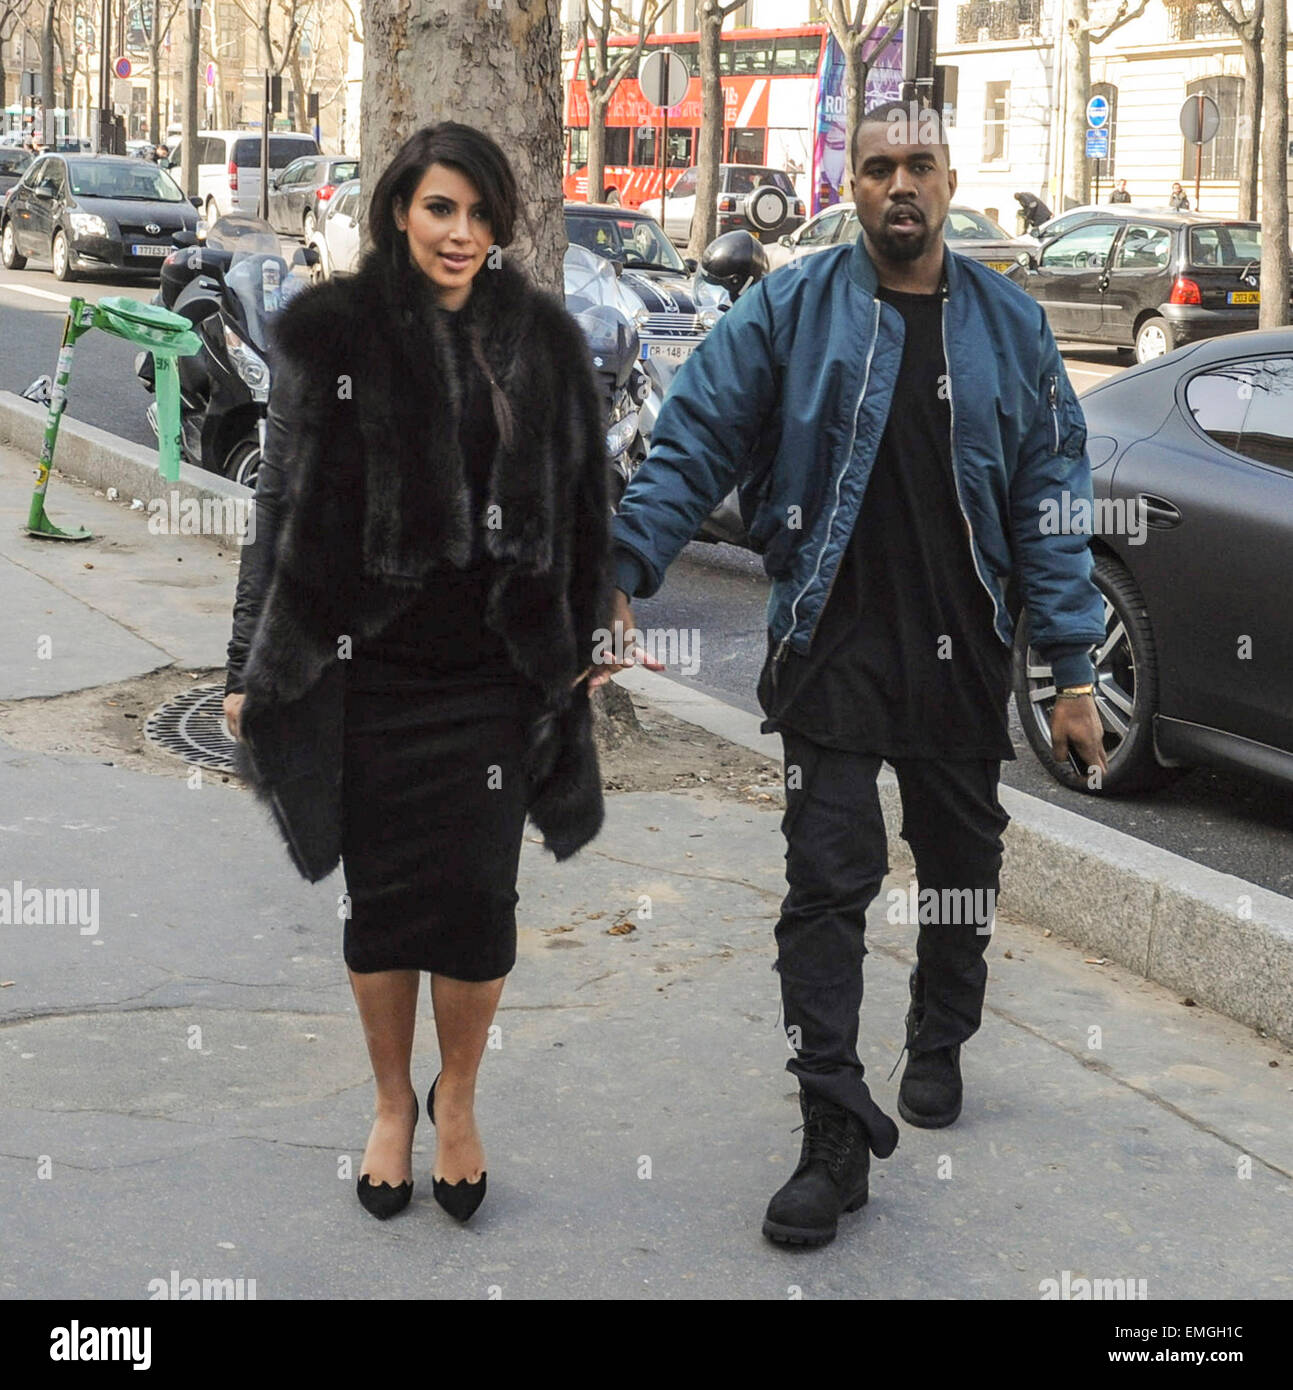 52eaa43c776c7 LONDON KIM KARDASHIAN AND KANYE WEST ARE SEEN LEAVING THE TOKYO EAT  RESTAURANT AT THE PALAIS DE TOKYO IN PARIS